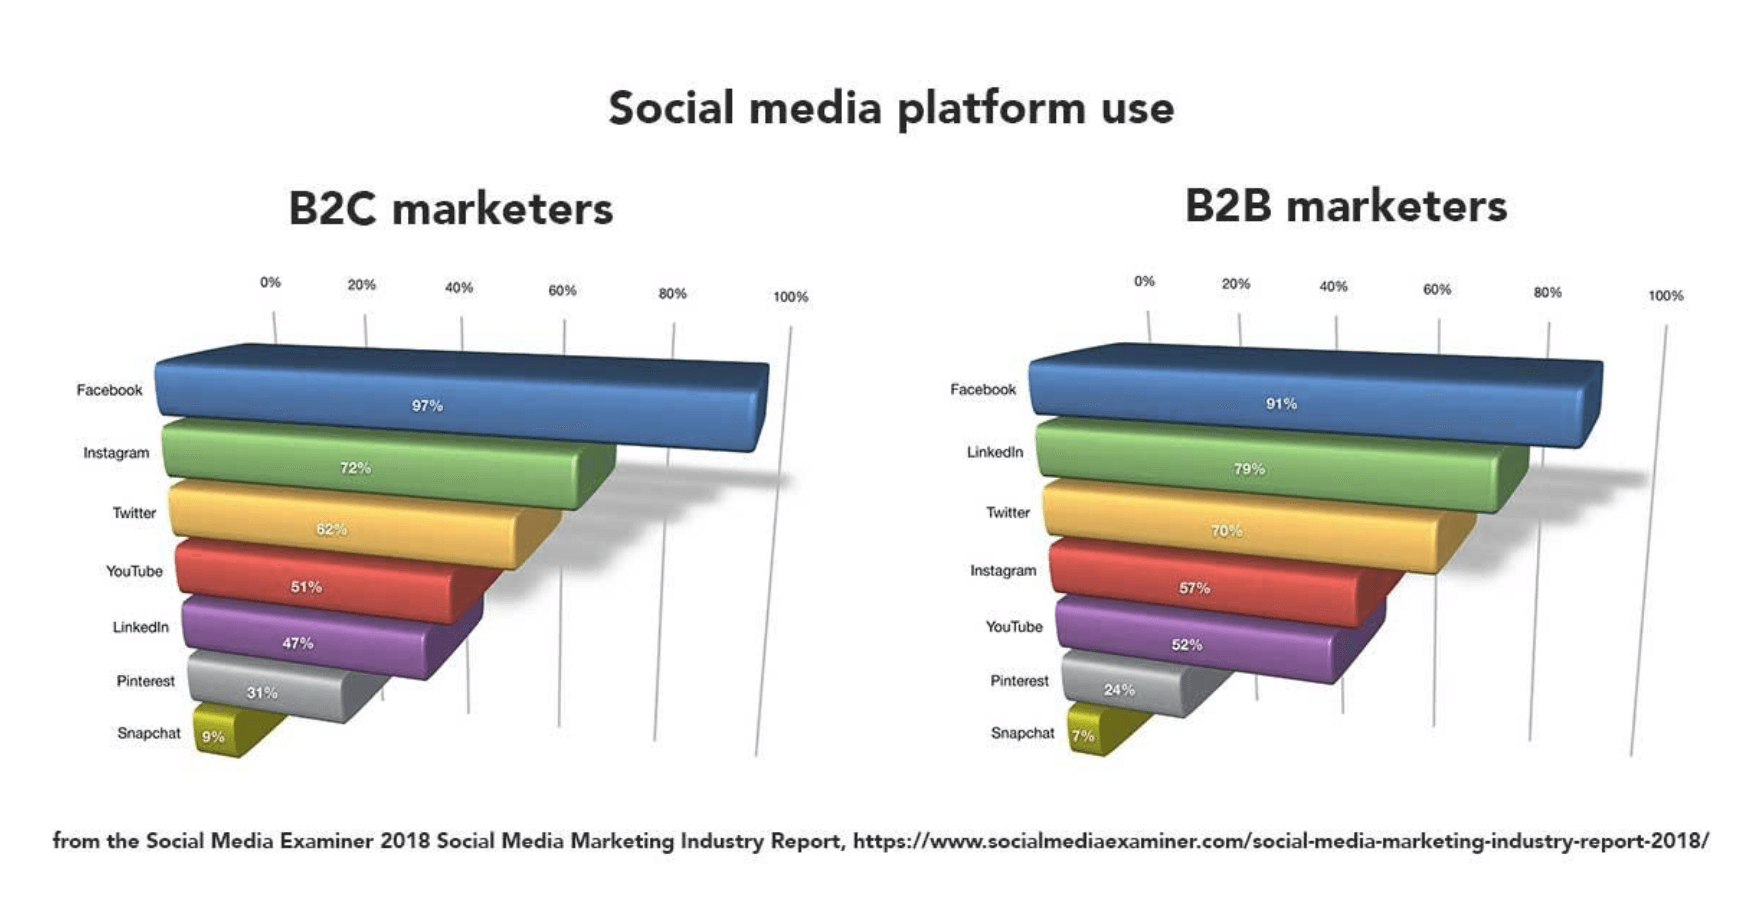 How do B2C and B2B marketers use social media platforms?